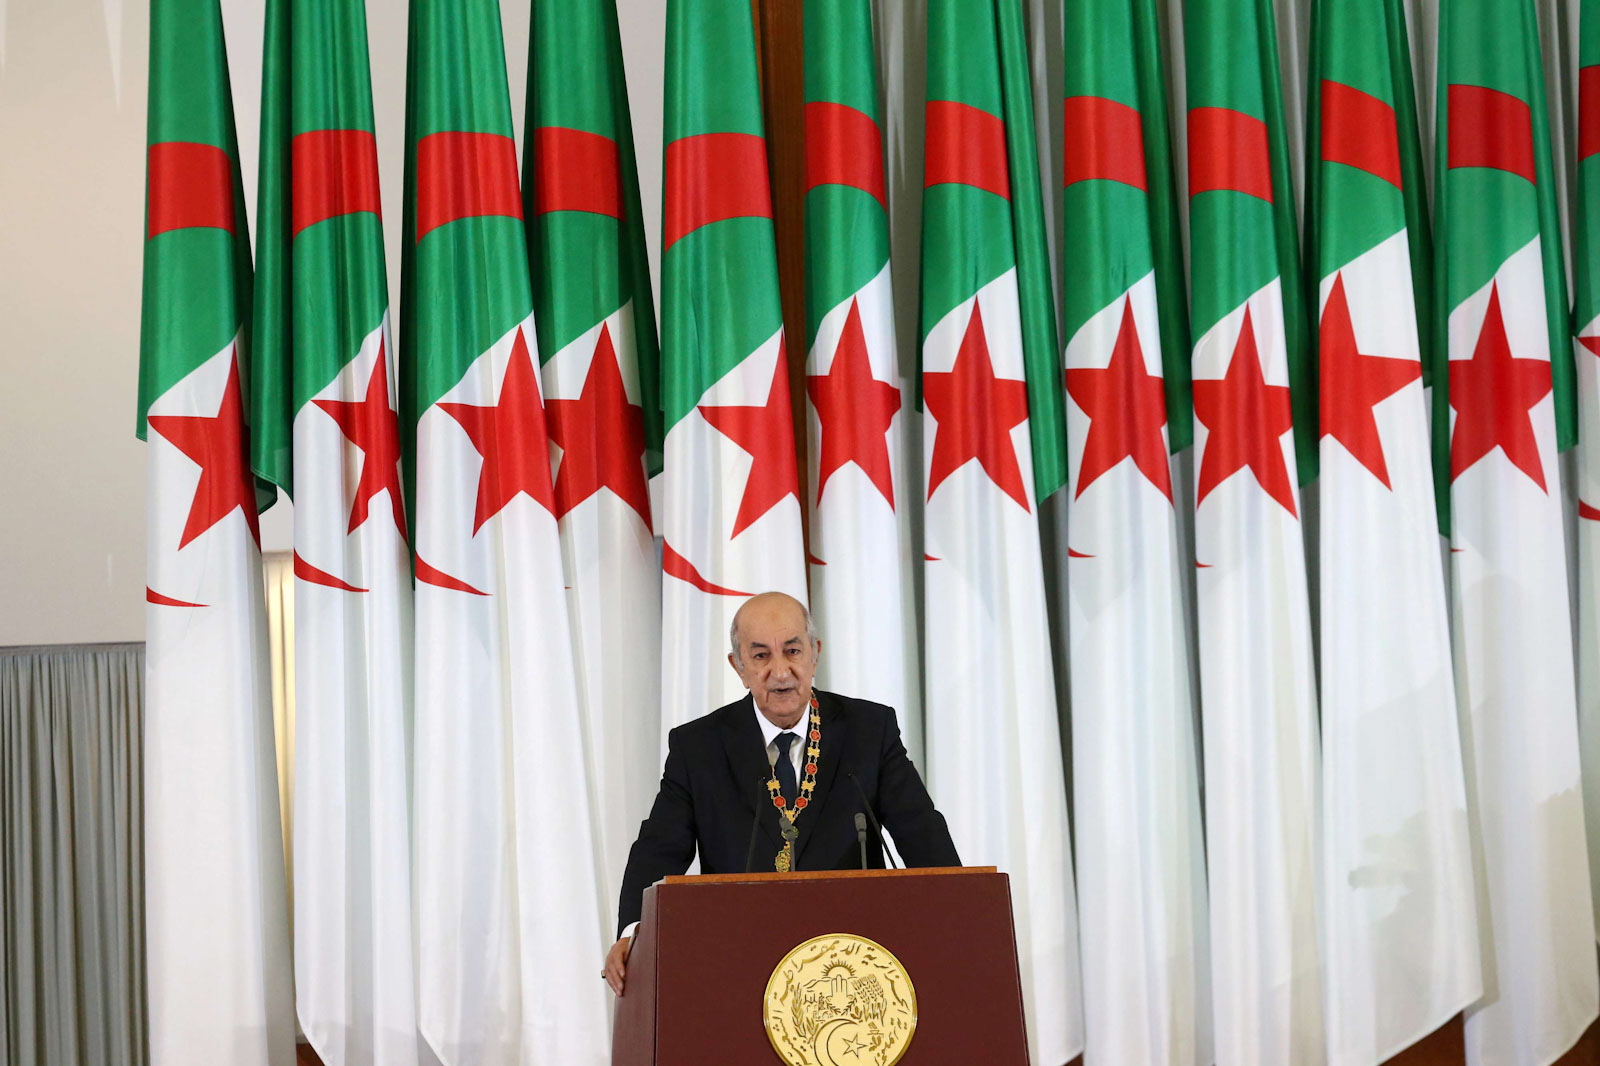 Newly elected Algerian President Abdelmadjid Tebboune delivers a speech during a swearing-in ceremony in Algiers, Algeria December 19, 2019. (Reuters)